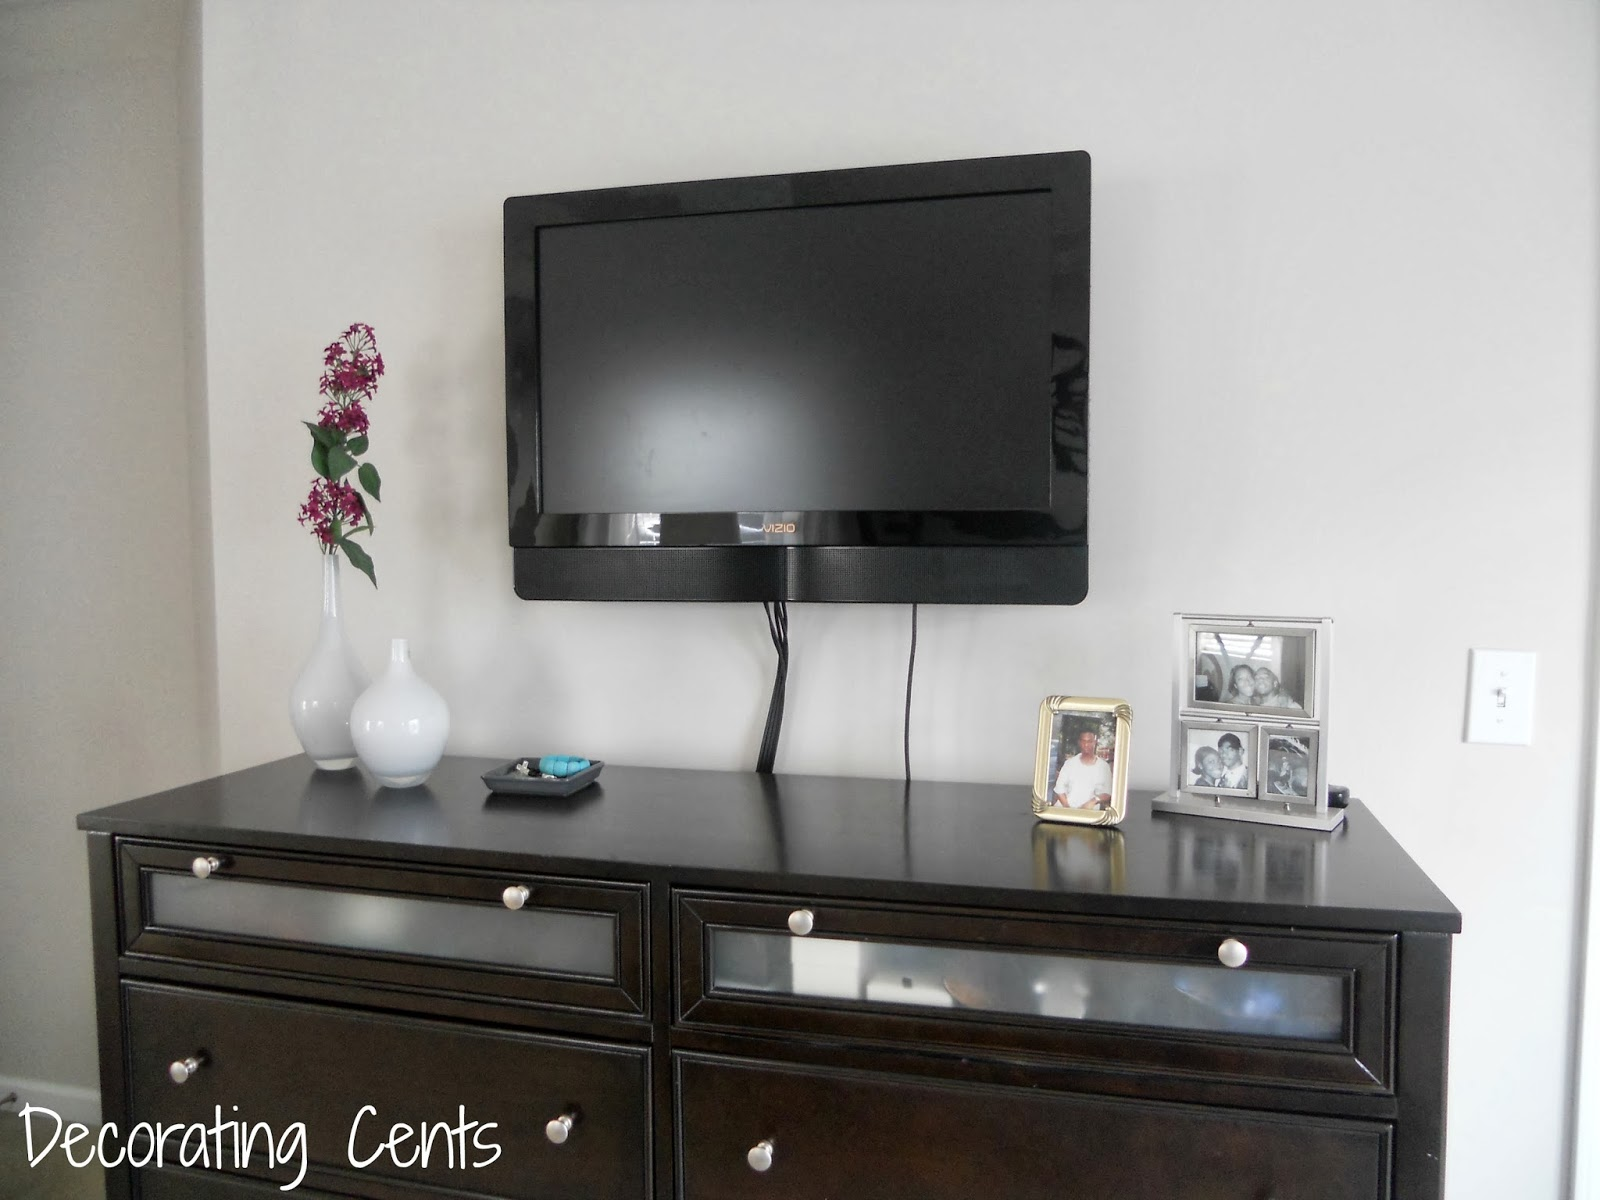 Wall mounted tv and yescomusa - Hanging tv on wall ideas ...